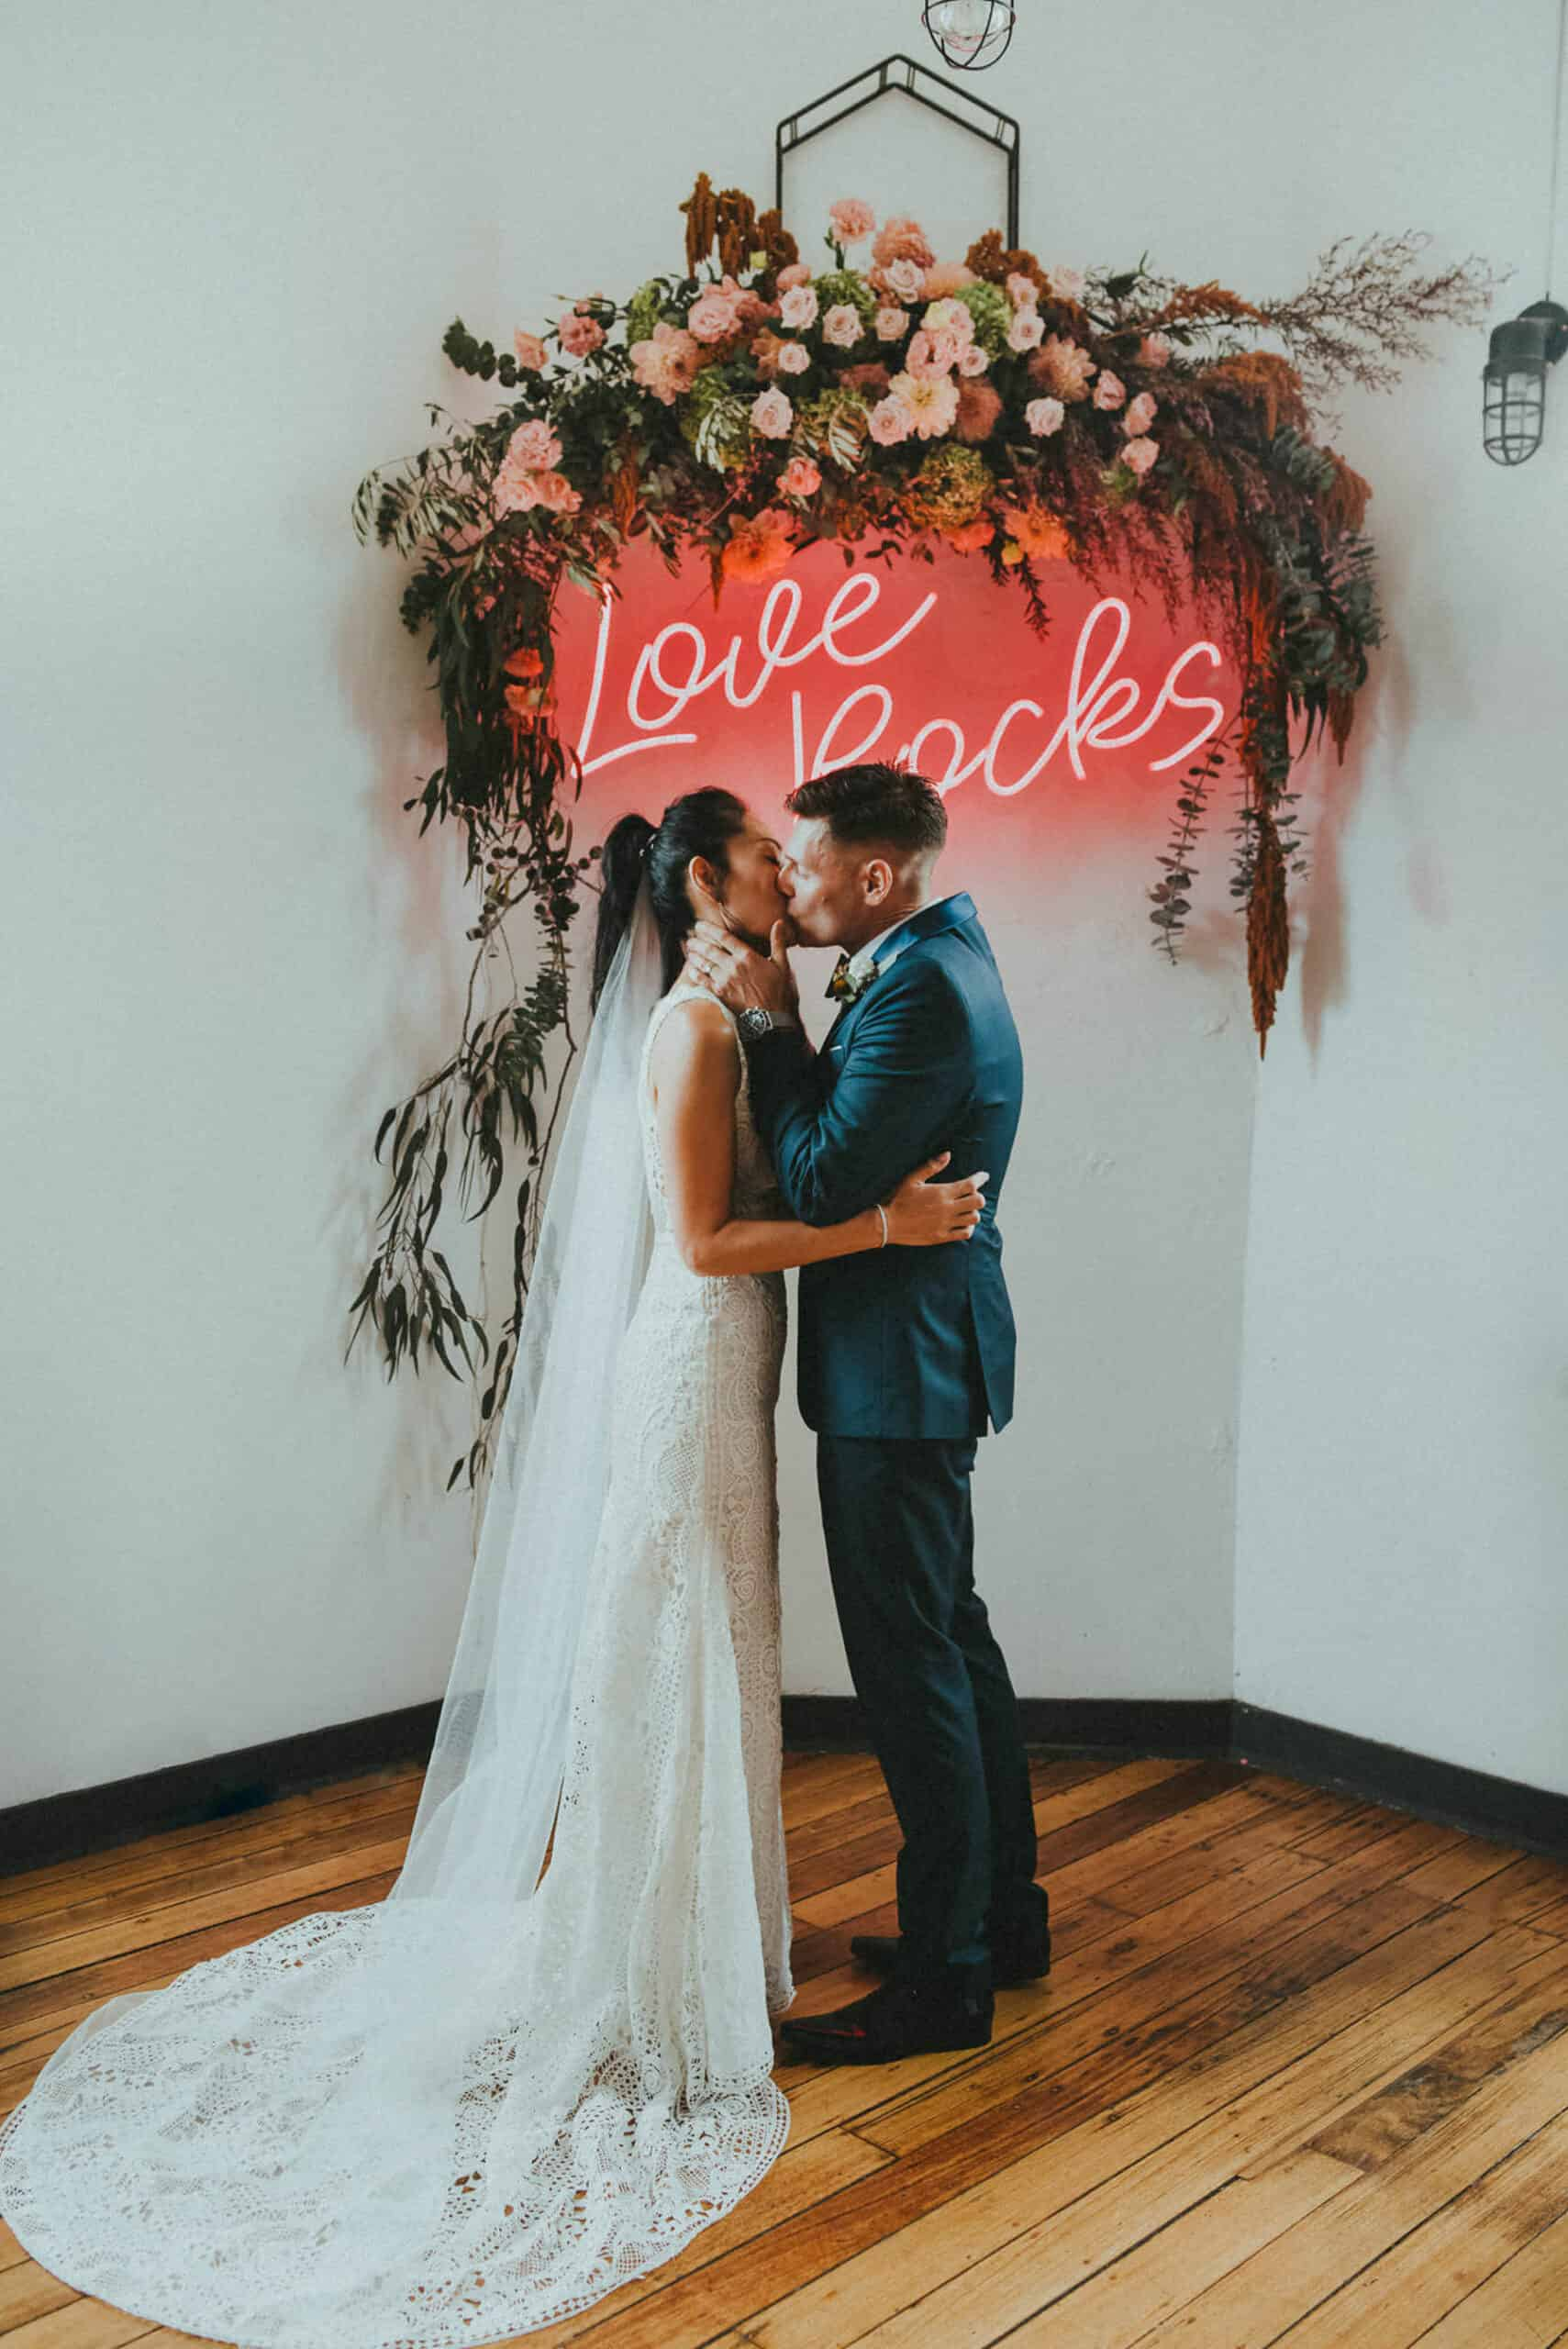 Modern Melbourne wedding at The Craft & Co in Collingwood / Photography by Tanya Voltchanskaya